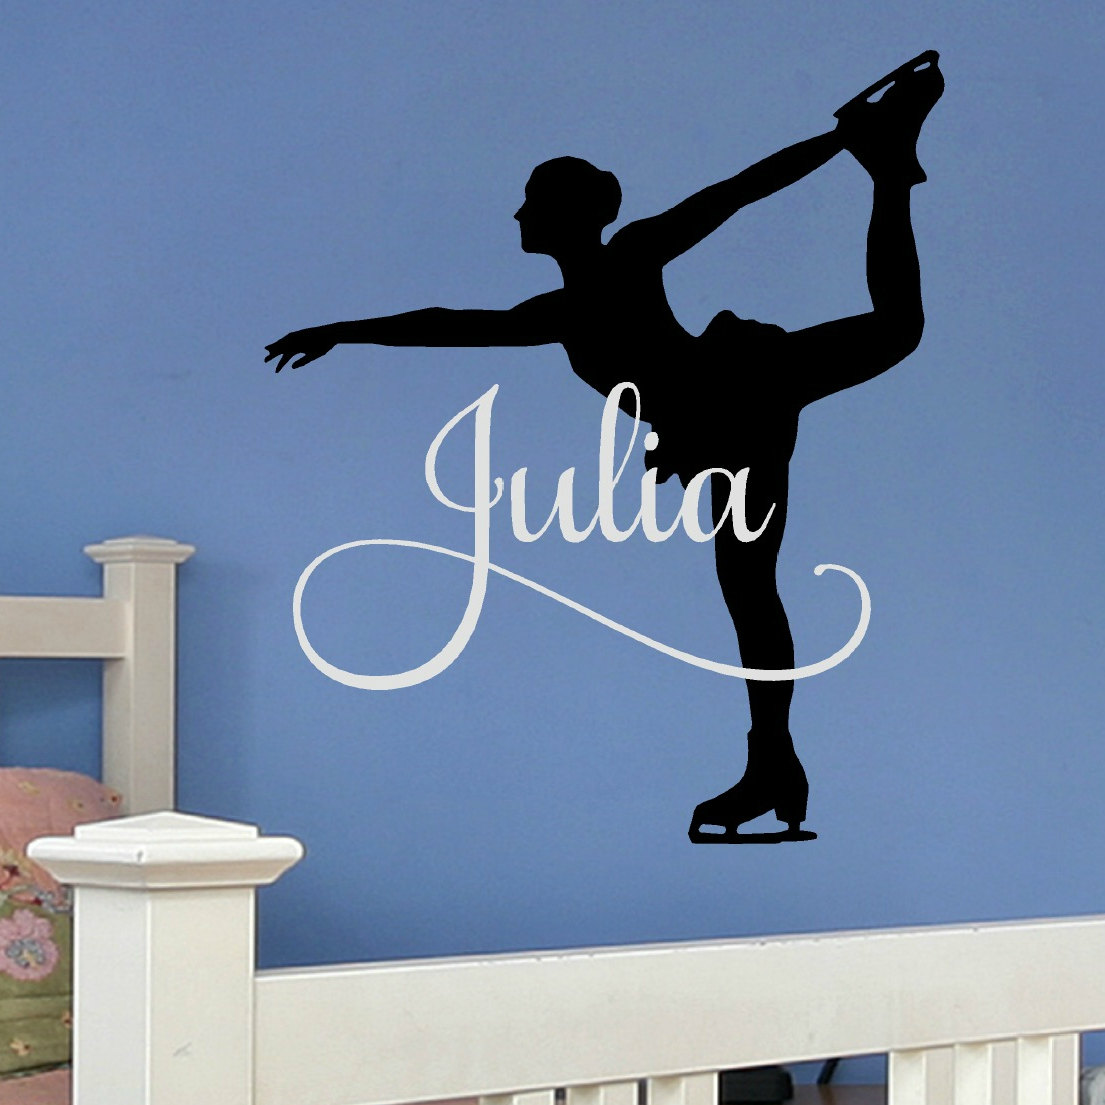 Figurine clipart figure skater Figure Wall Skating Decal Gift